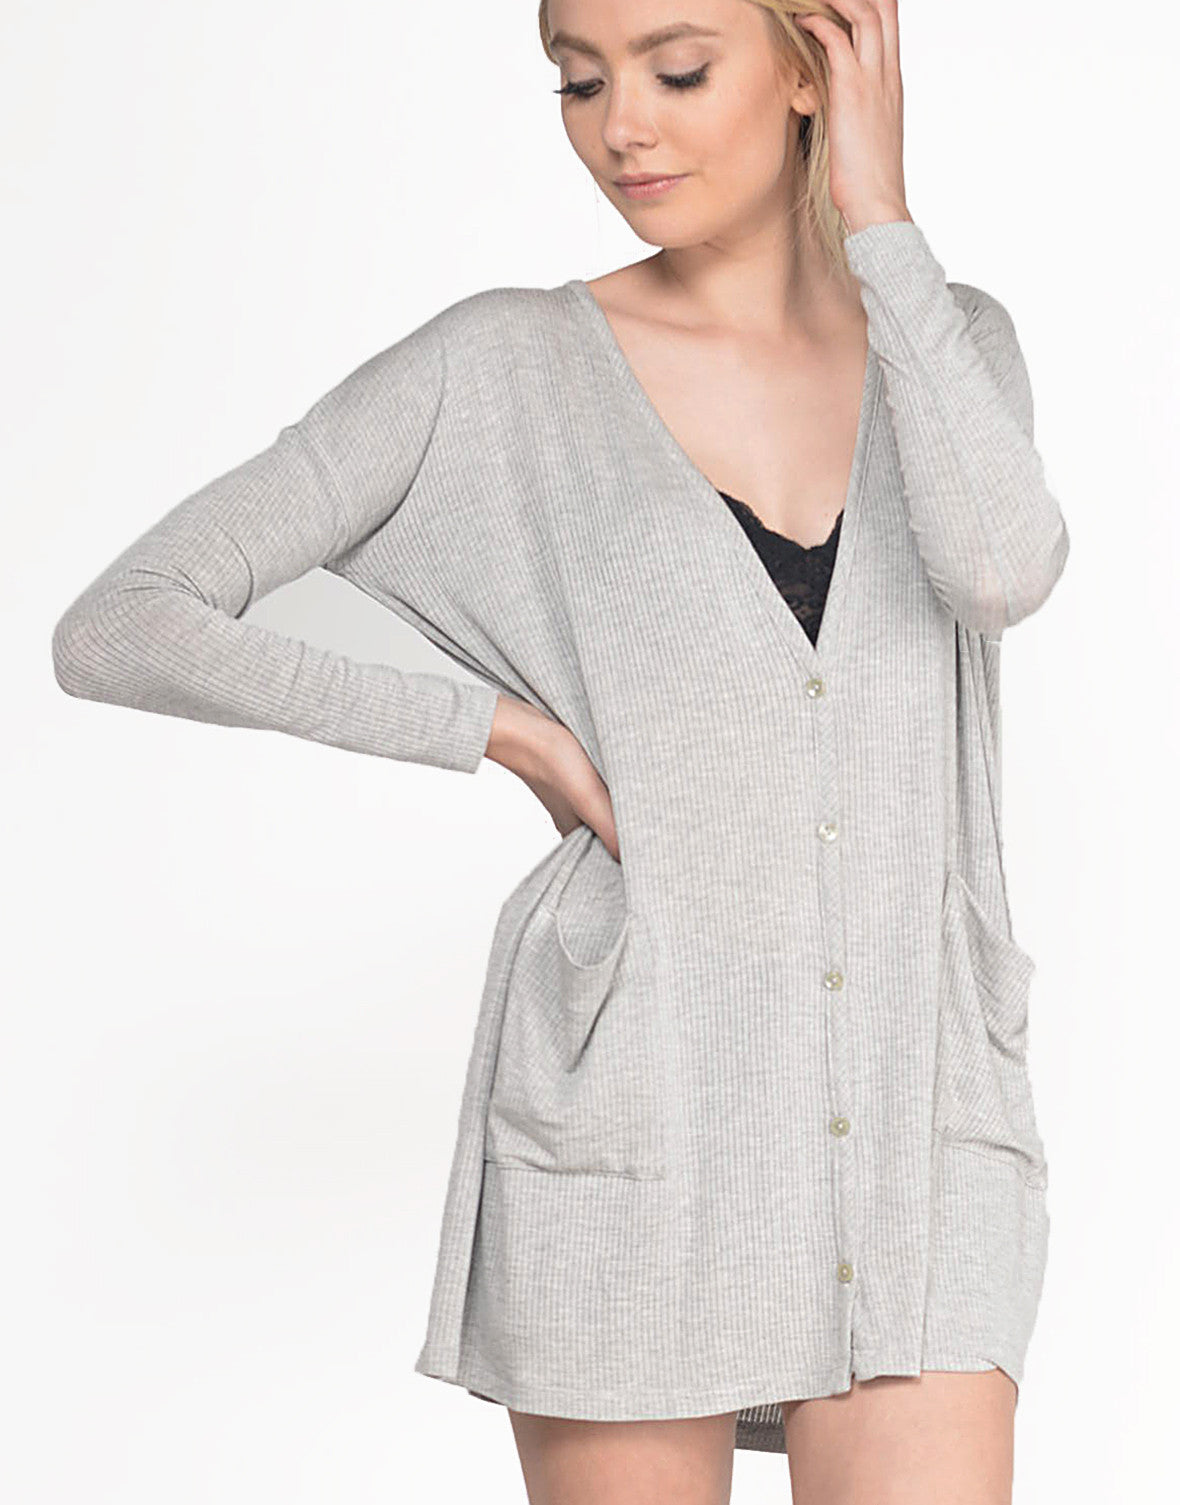 Detail of Oversized Lightweight Ribbed Cardigan